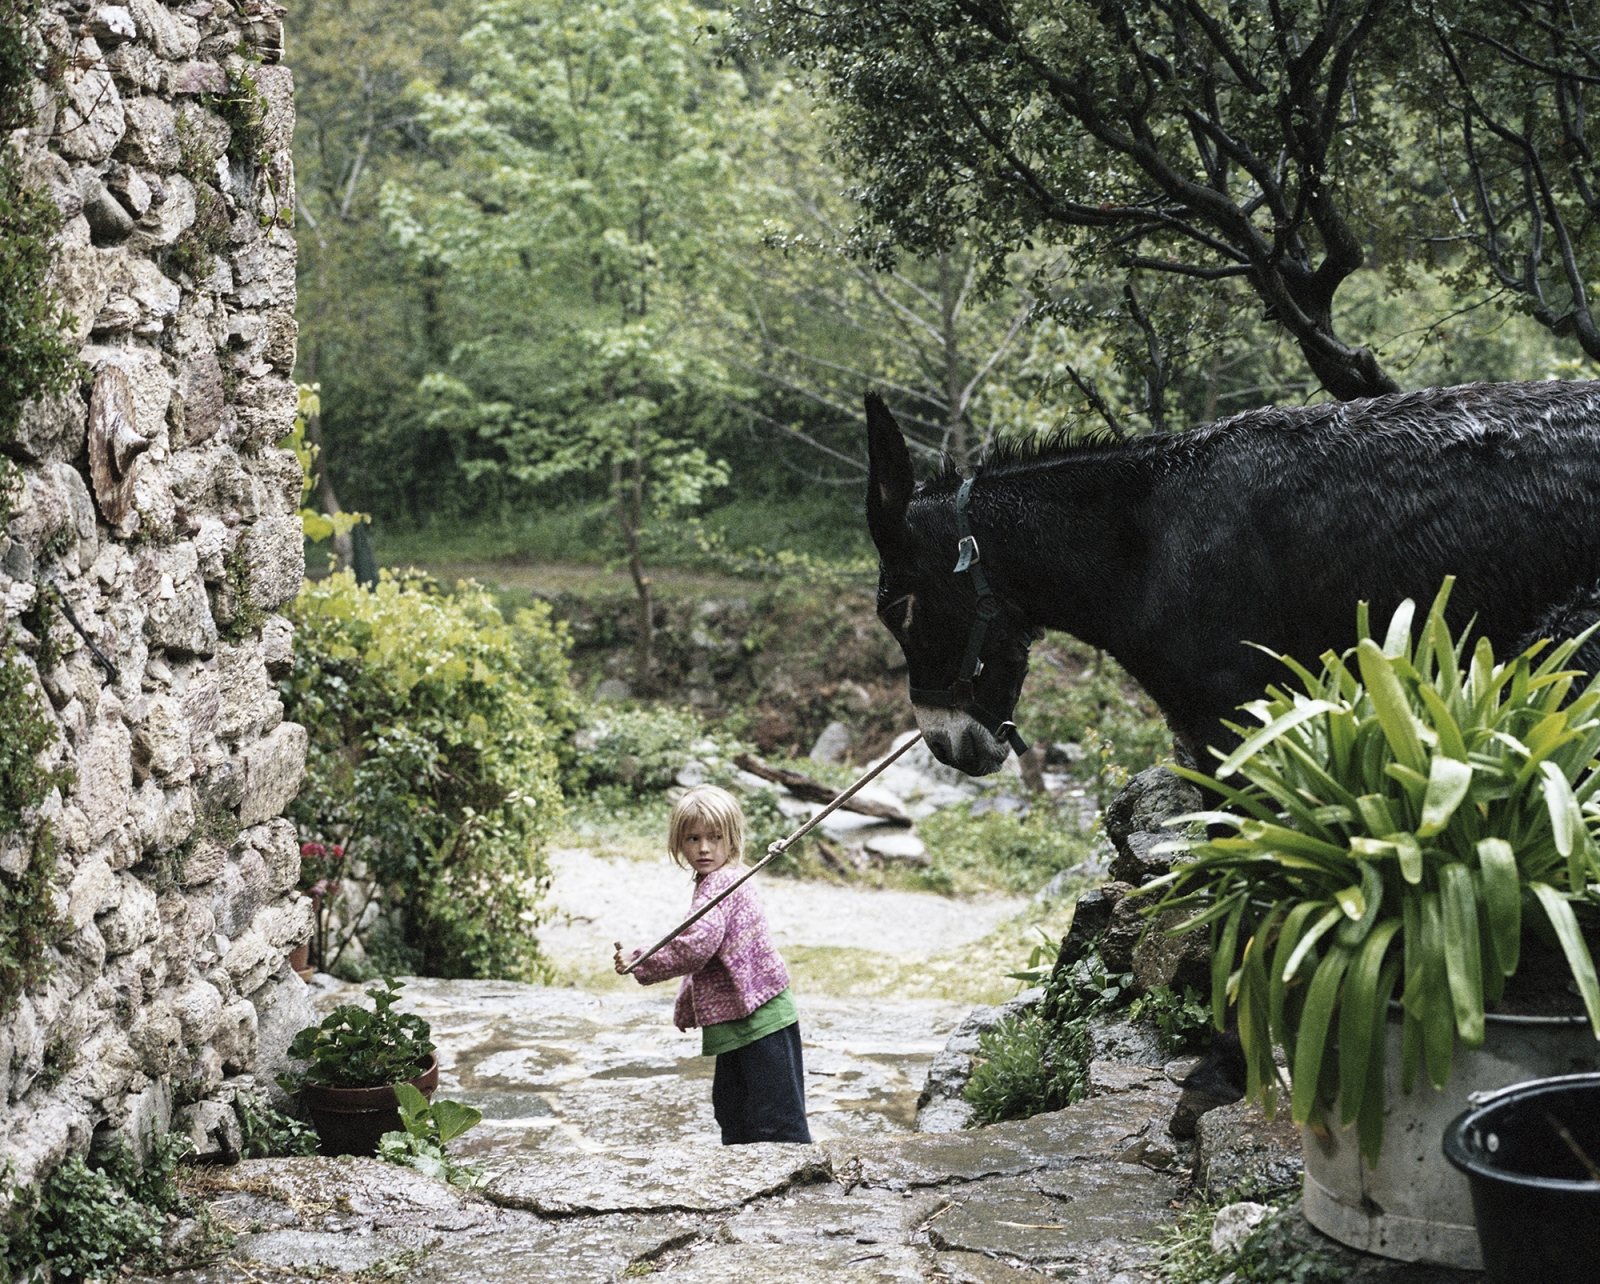 France,Amelie-Les-Bains. One of the daughter of Frauke. Frauke and his family decided to move on the Pyrenees, there they rebuilt a farm where they grow biological vegetable and host people that would like to help them in the farmer activities.